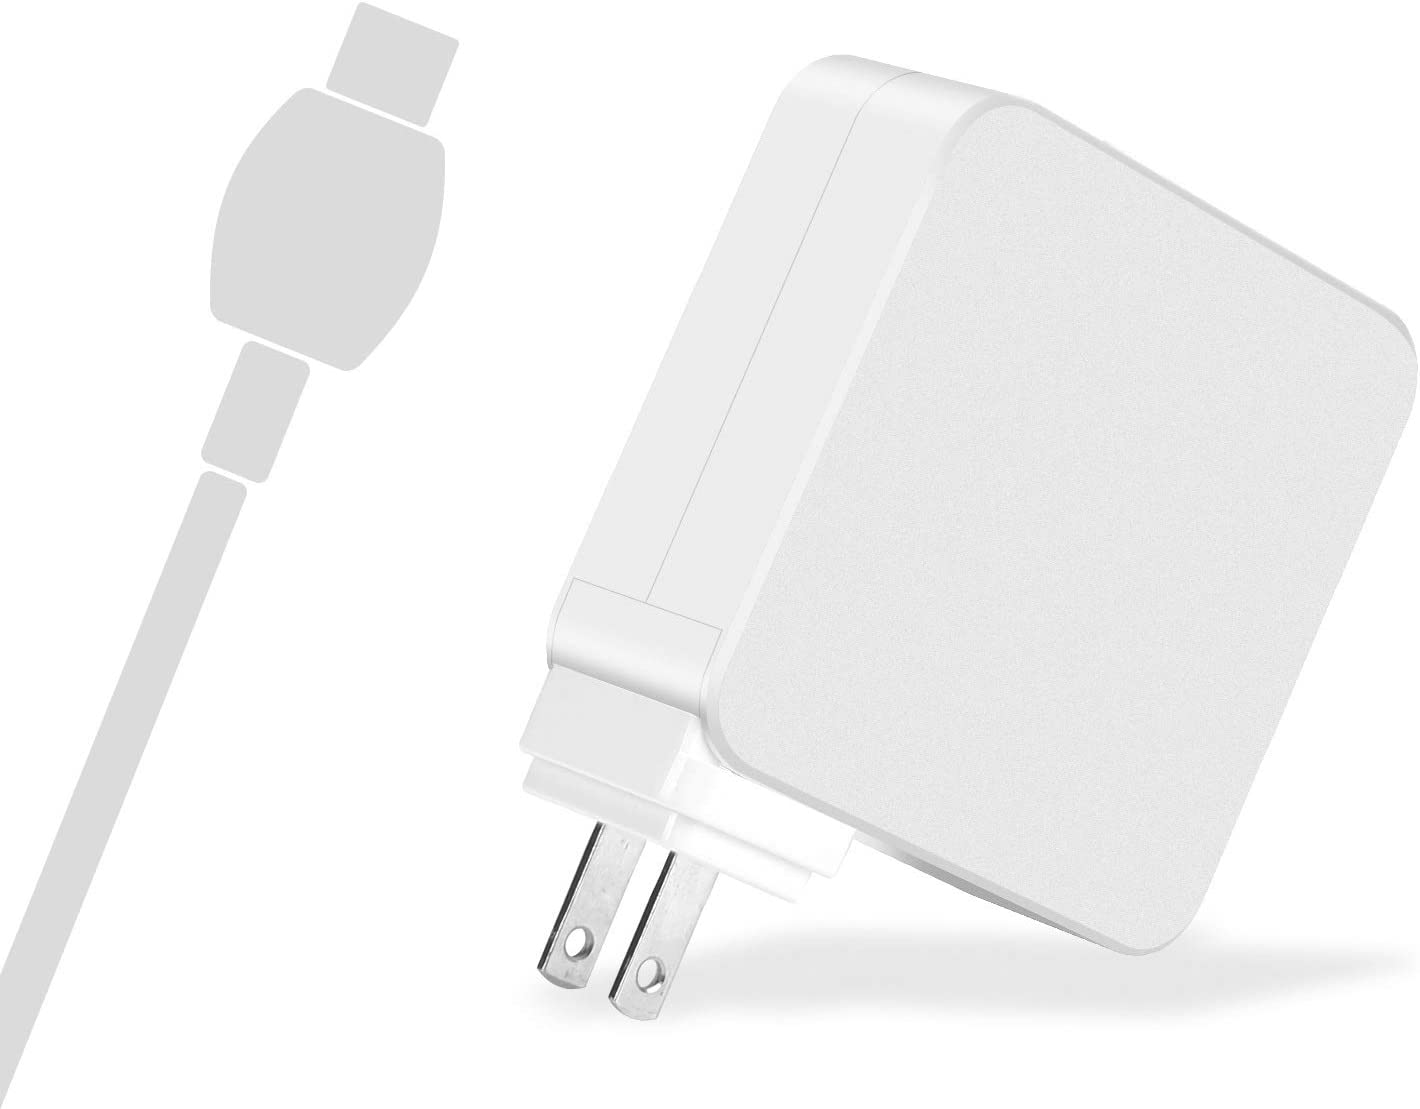 Mac Book Air 61W USB-C to USB-C Ac Power Adapter Supply Charger Compatible Replacement for Pro 12 Inch 13 Inch, Air 2018, USB-C Cable Included